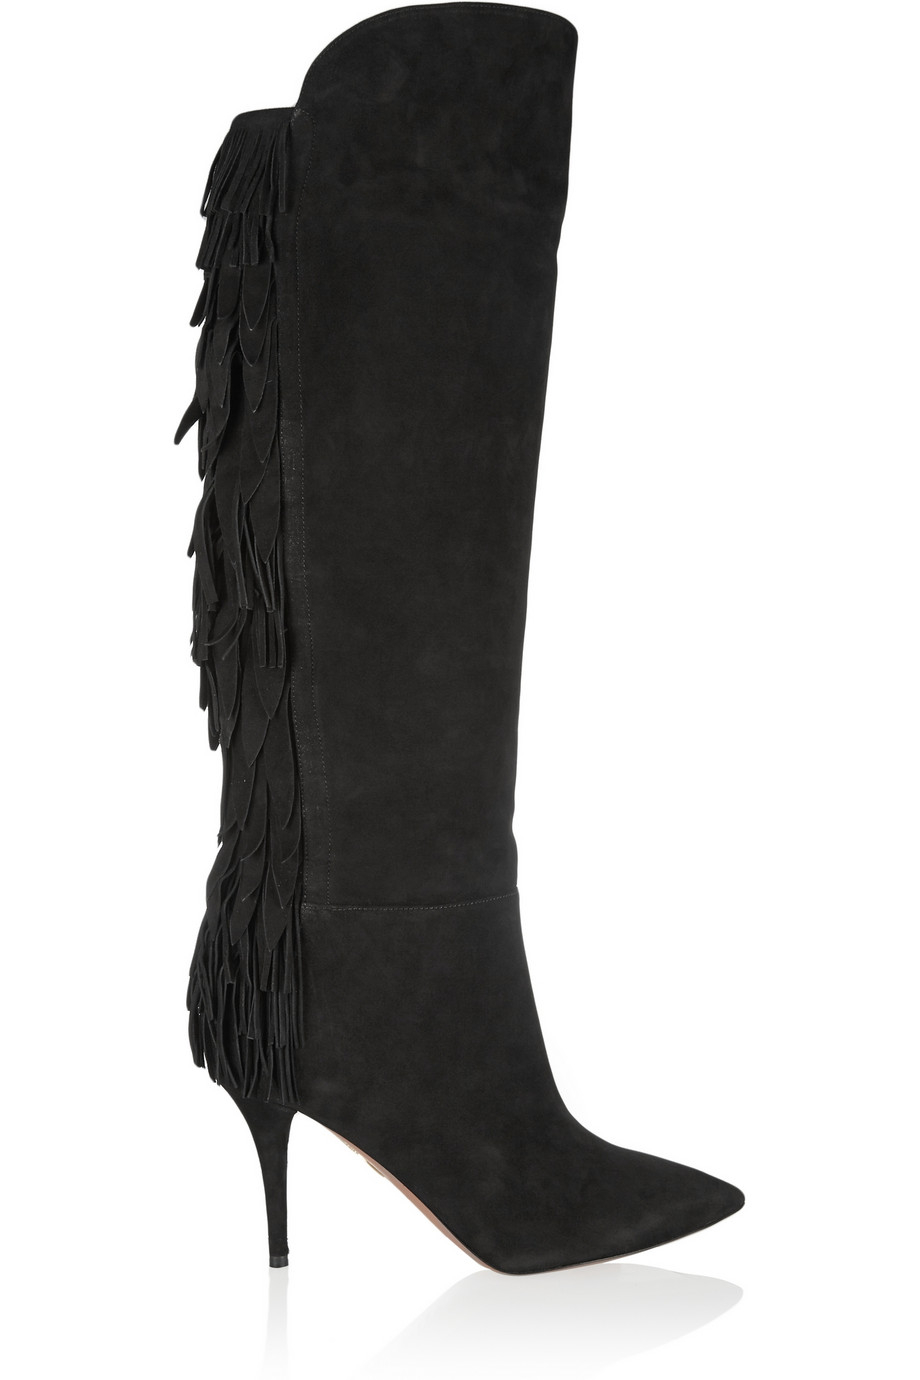 Aquazzura Jagger Fringed Suede Boots in Black